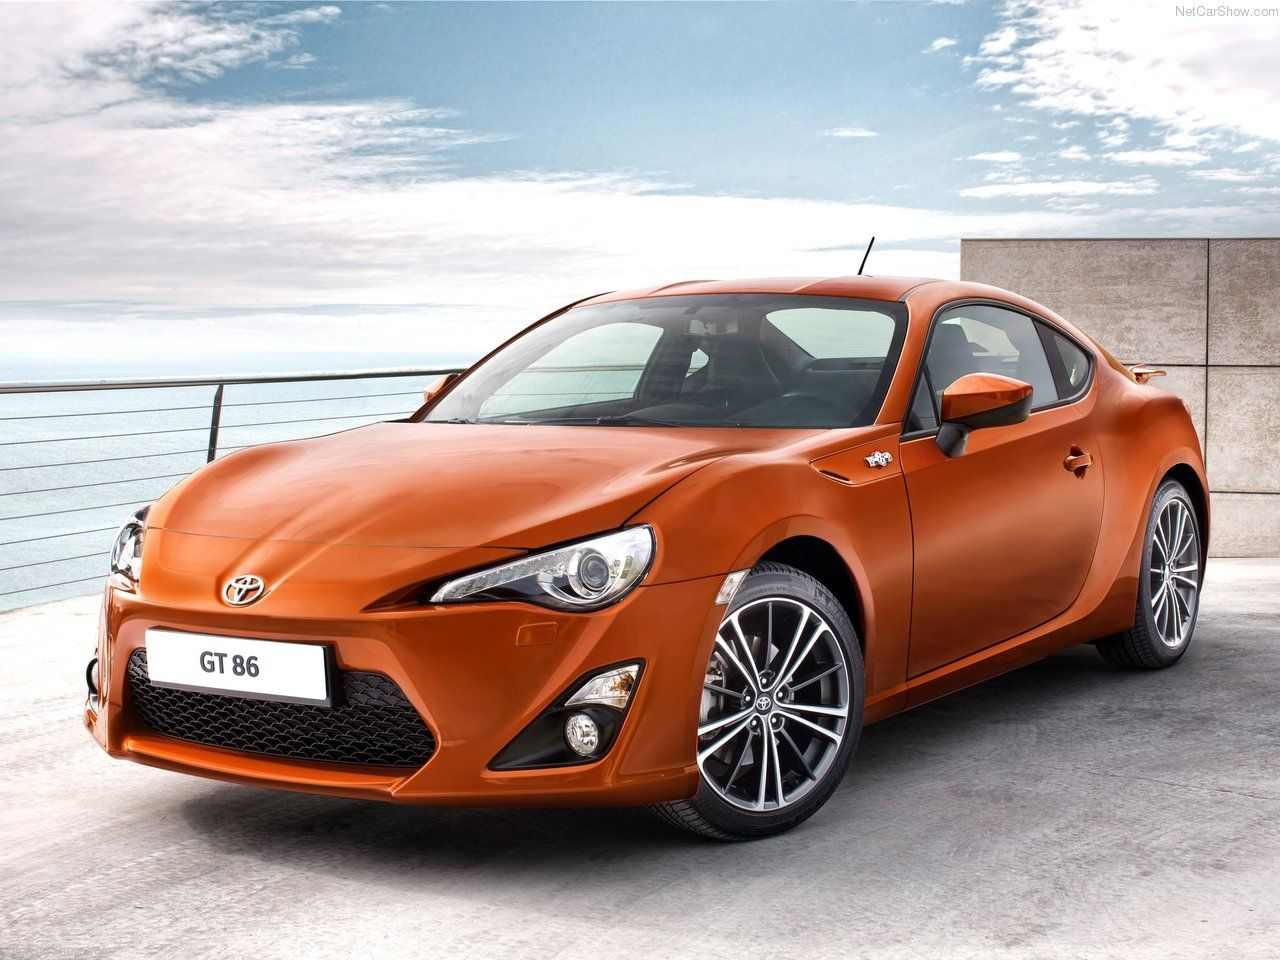 Toyota Gt 86 Also Sold As Scion Fr S Co Developed With Subaru It Has Subaru S Charismatic Boxer Engine And Is Almost Toyota Gt86 Toyota Cars New Sports Cars